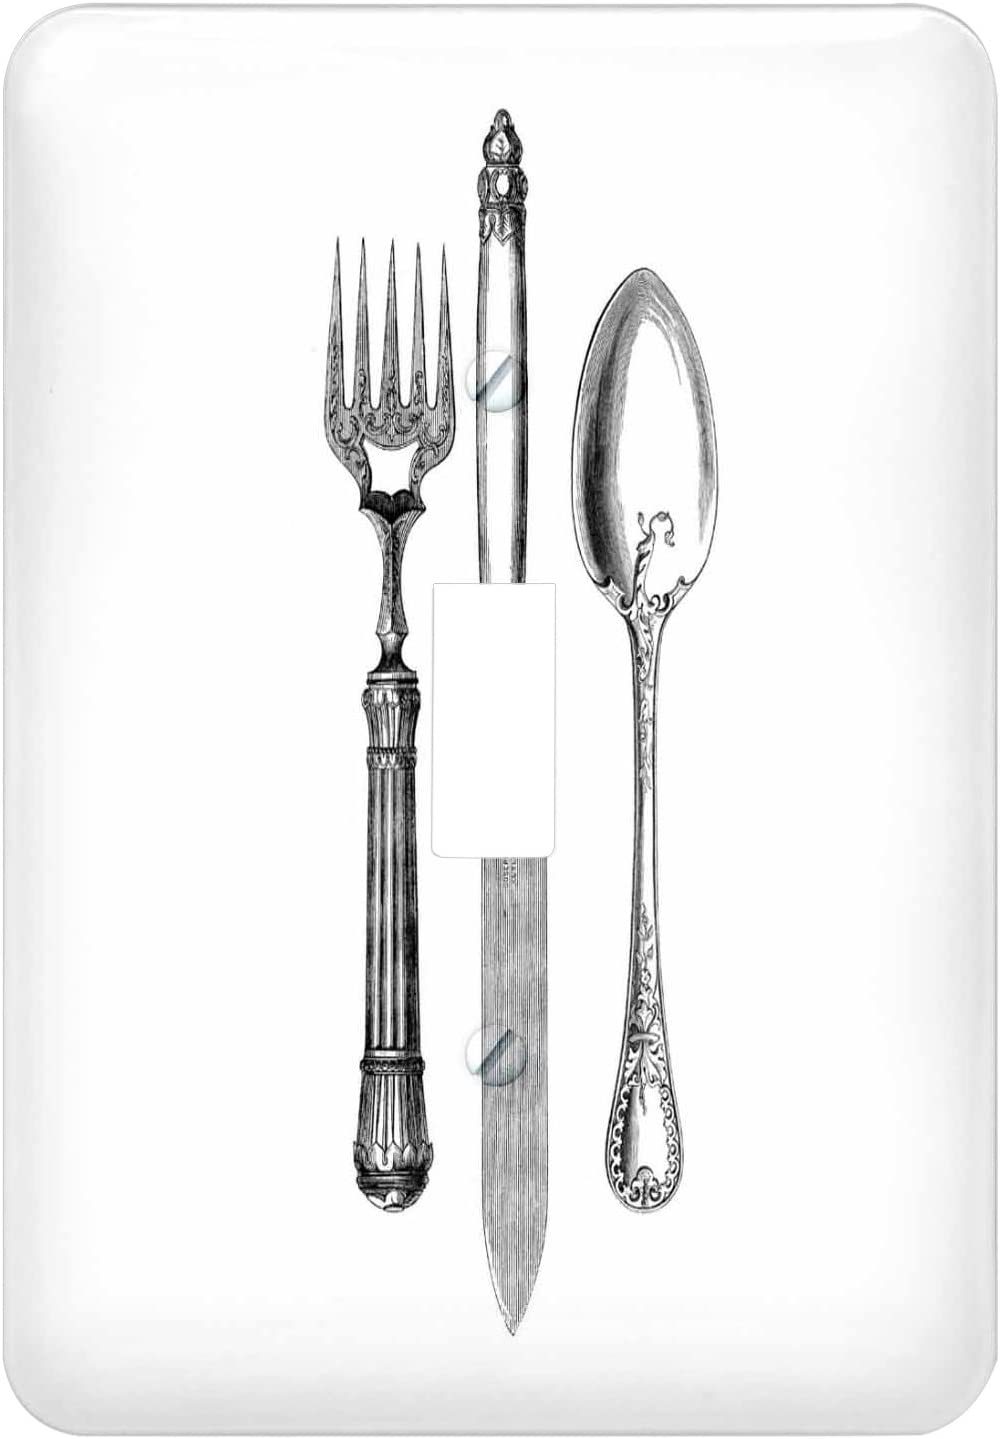 3drose Lsp 161556 1 Black And White Vintage Cutlery Set Fancy Fork Knife And Spoon Drawing Restaurant Kitchen Chef Single Toggle Switch Amazon Com